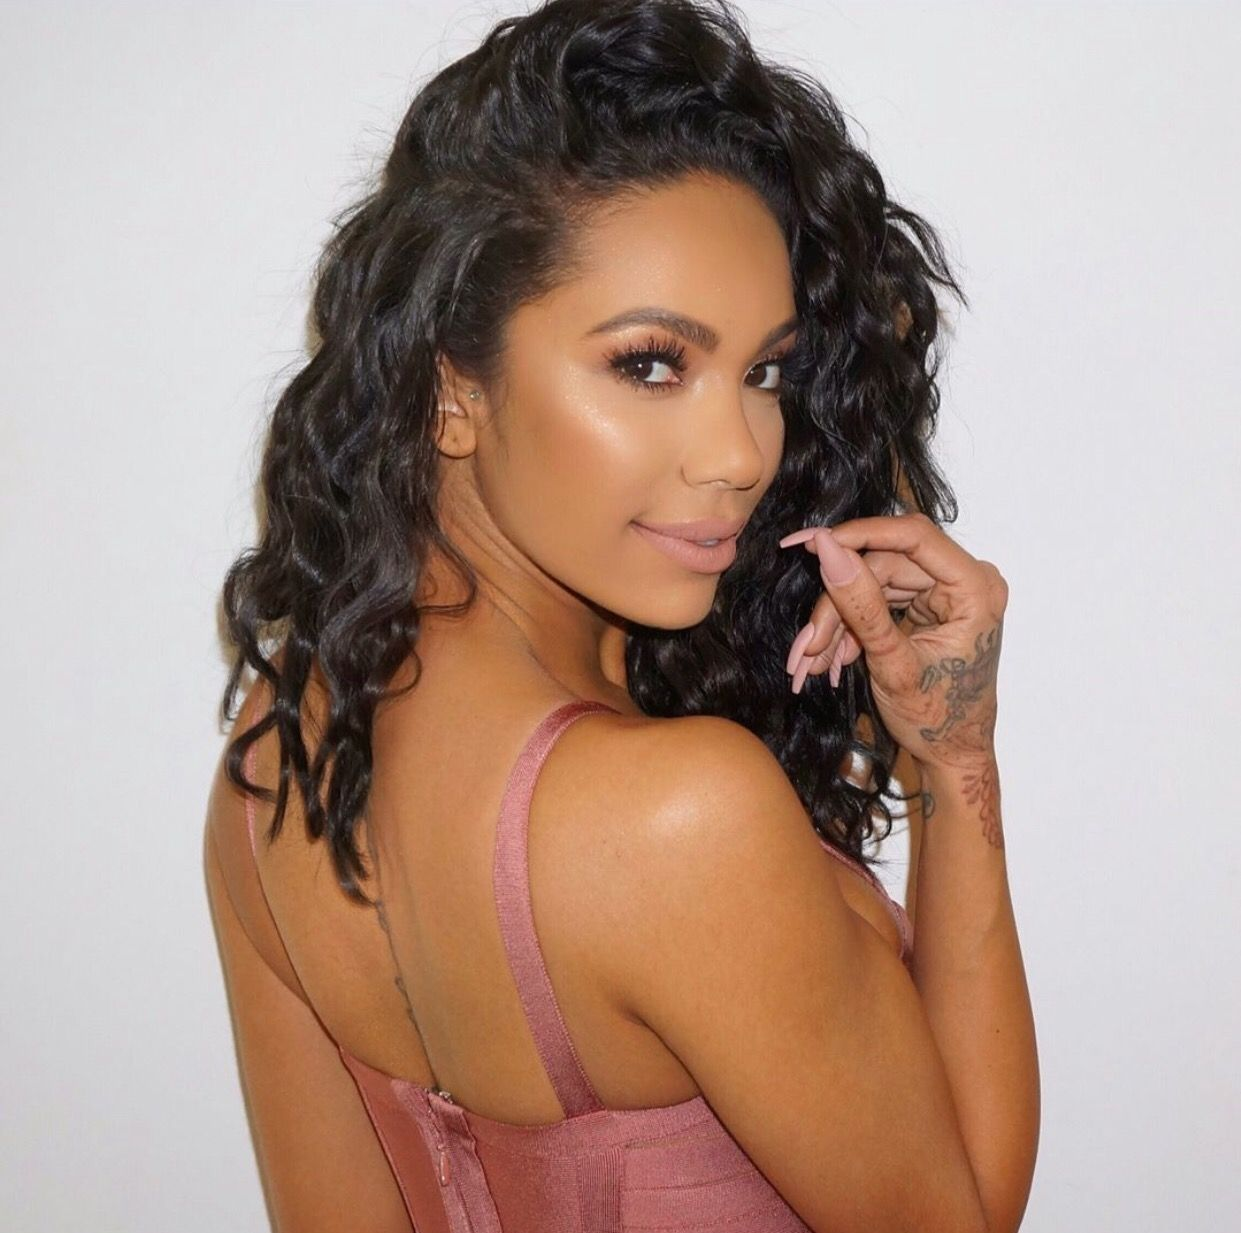 erica-mena-says-shes-inspired-by-her-own-life-see-her-cool-outfit